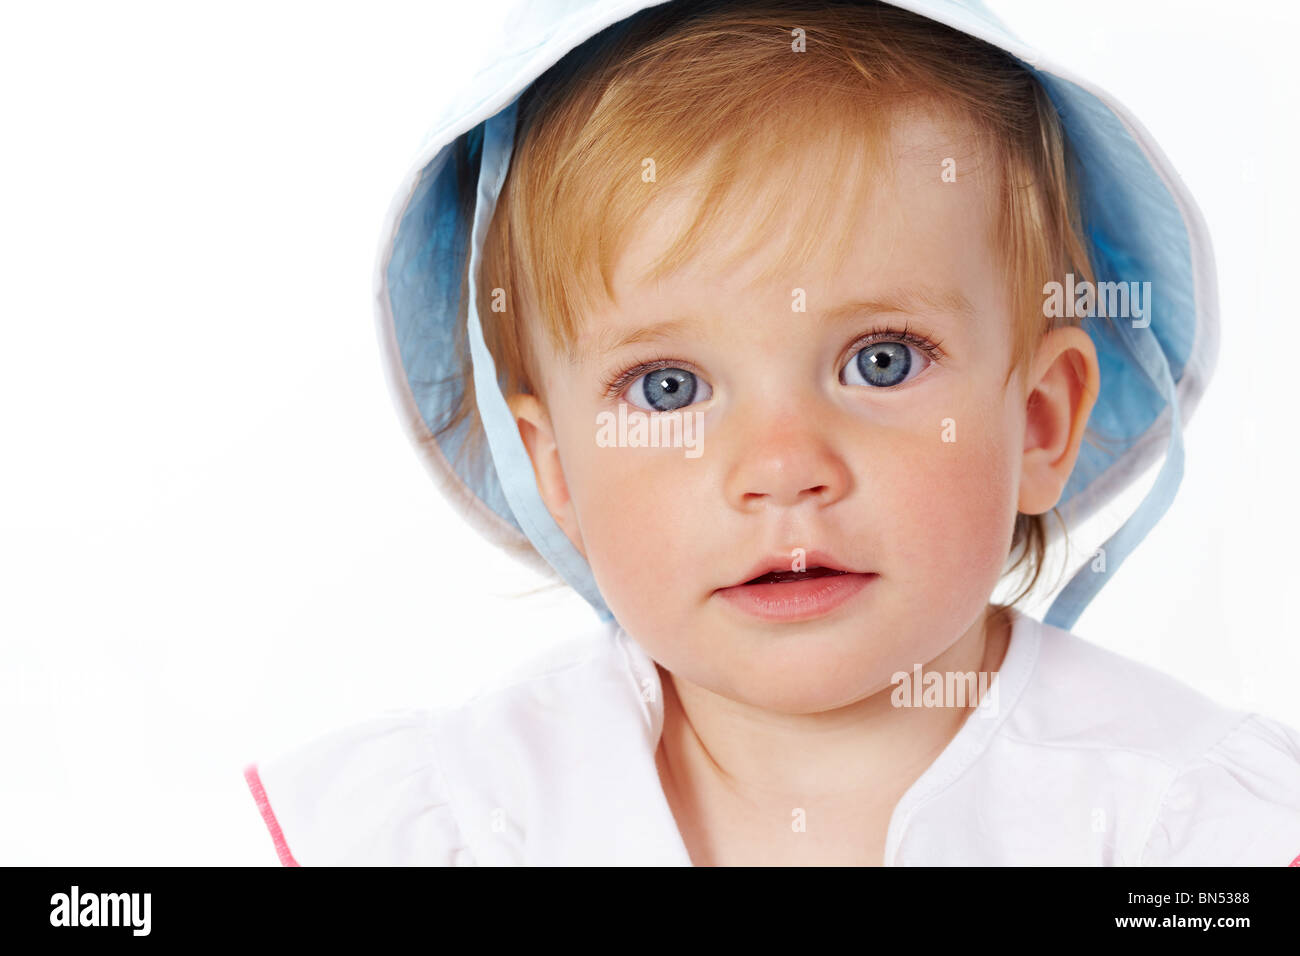 Portrait of cute child looking at camera over white background - Stock Image